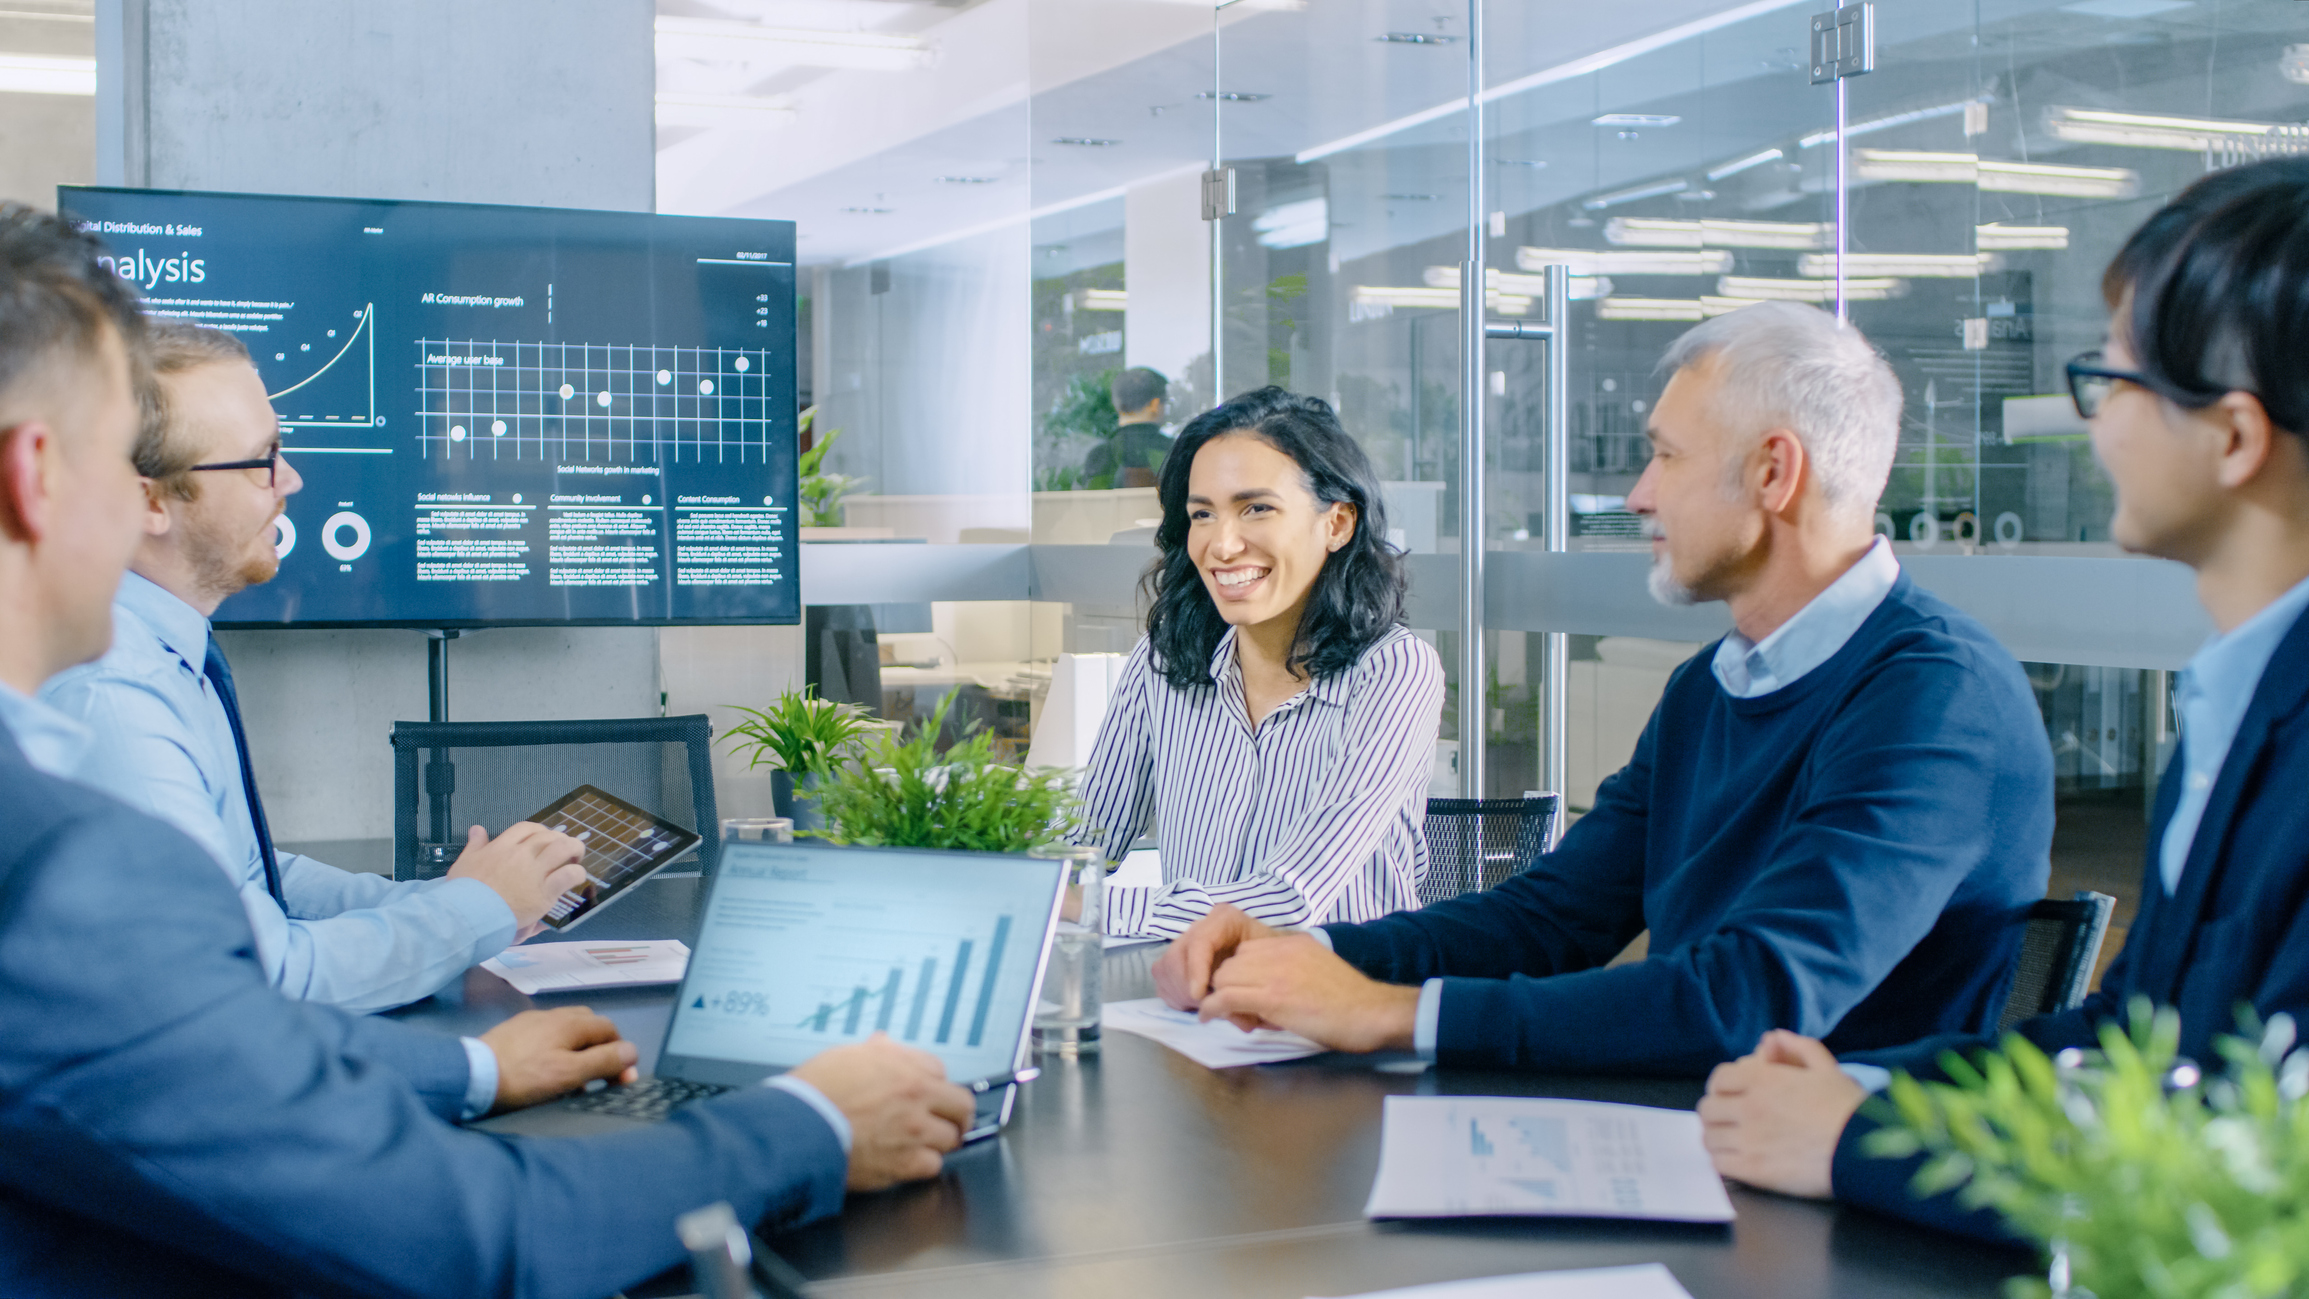 Stock Photo of business meeting with charts and graphs on display